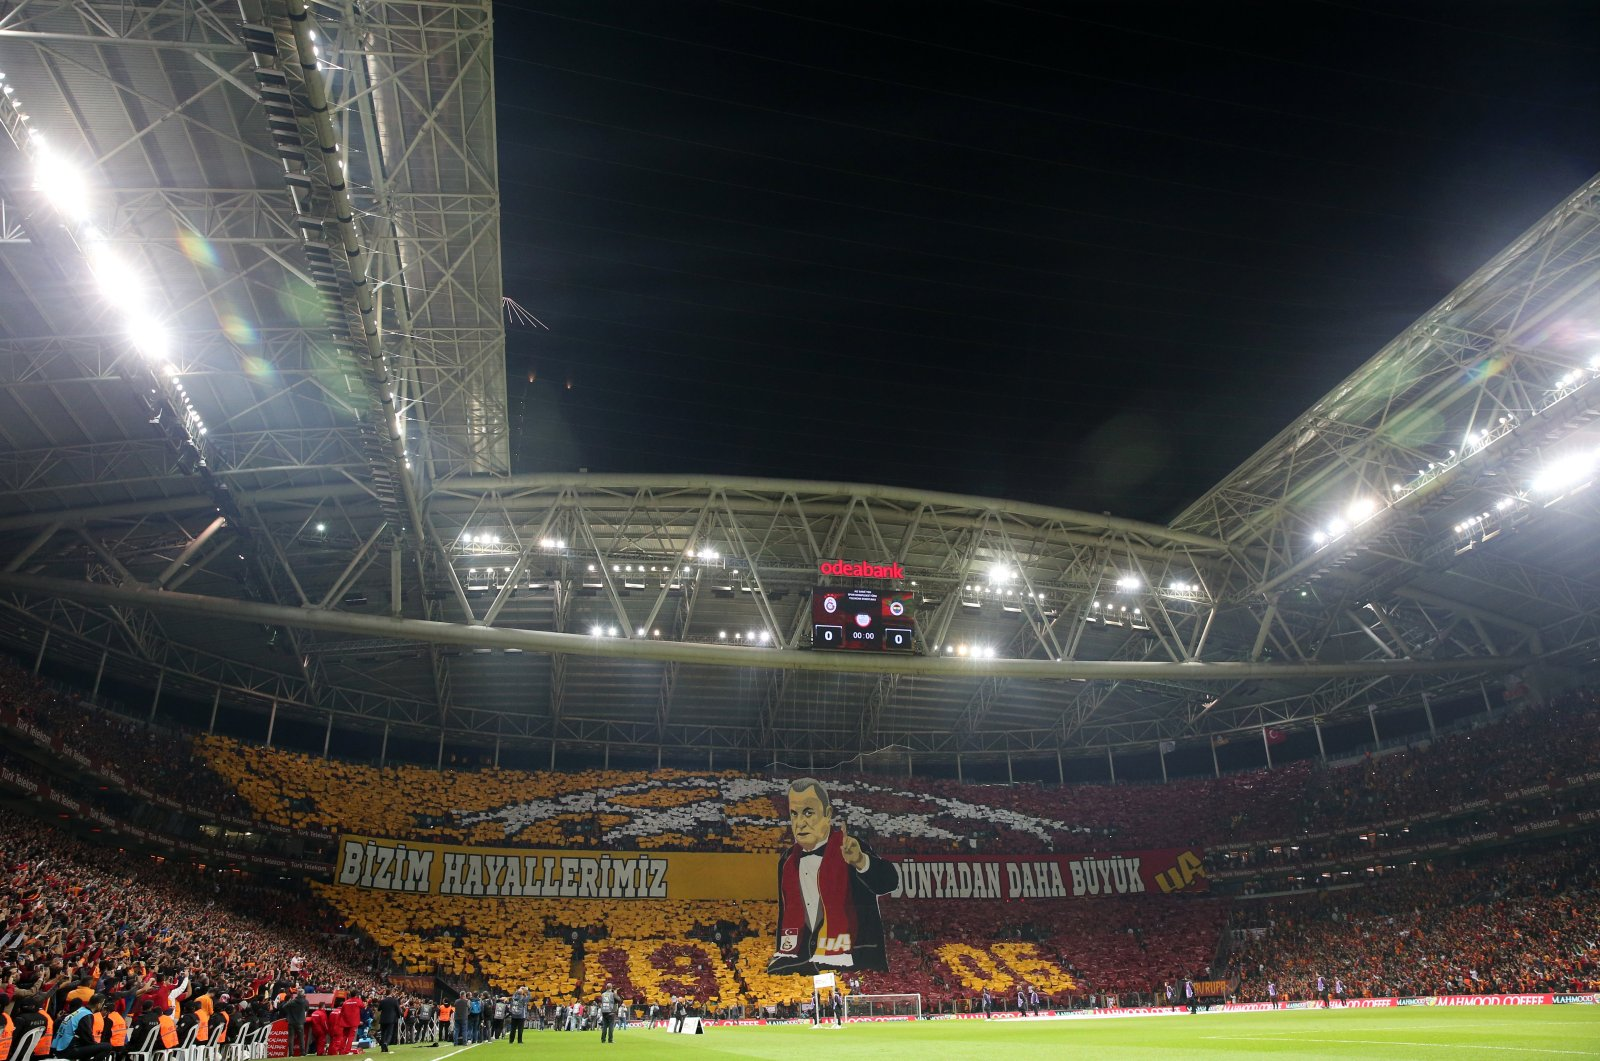 Galatasaray's Türk Telekom Stadium is seen before a derby match against Fenerbahçe in this file photo (AA Photo)